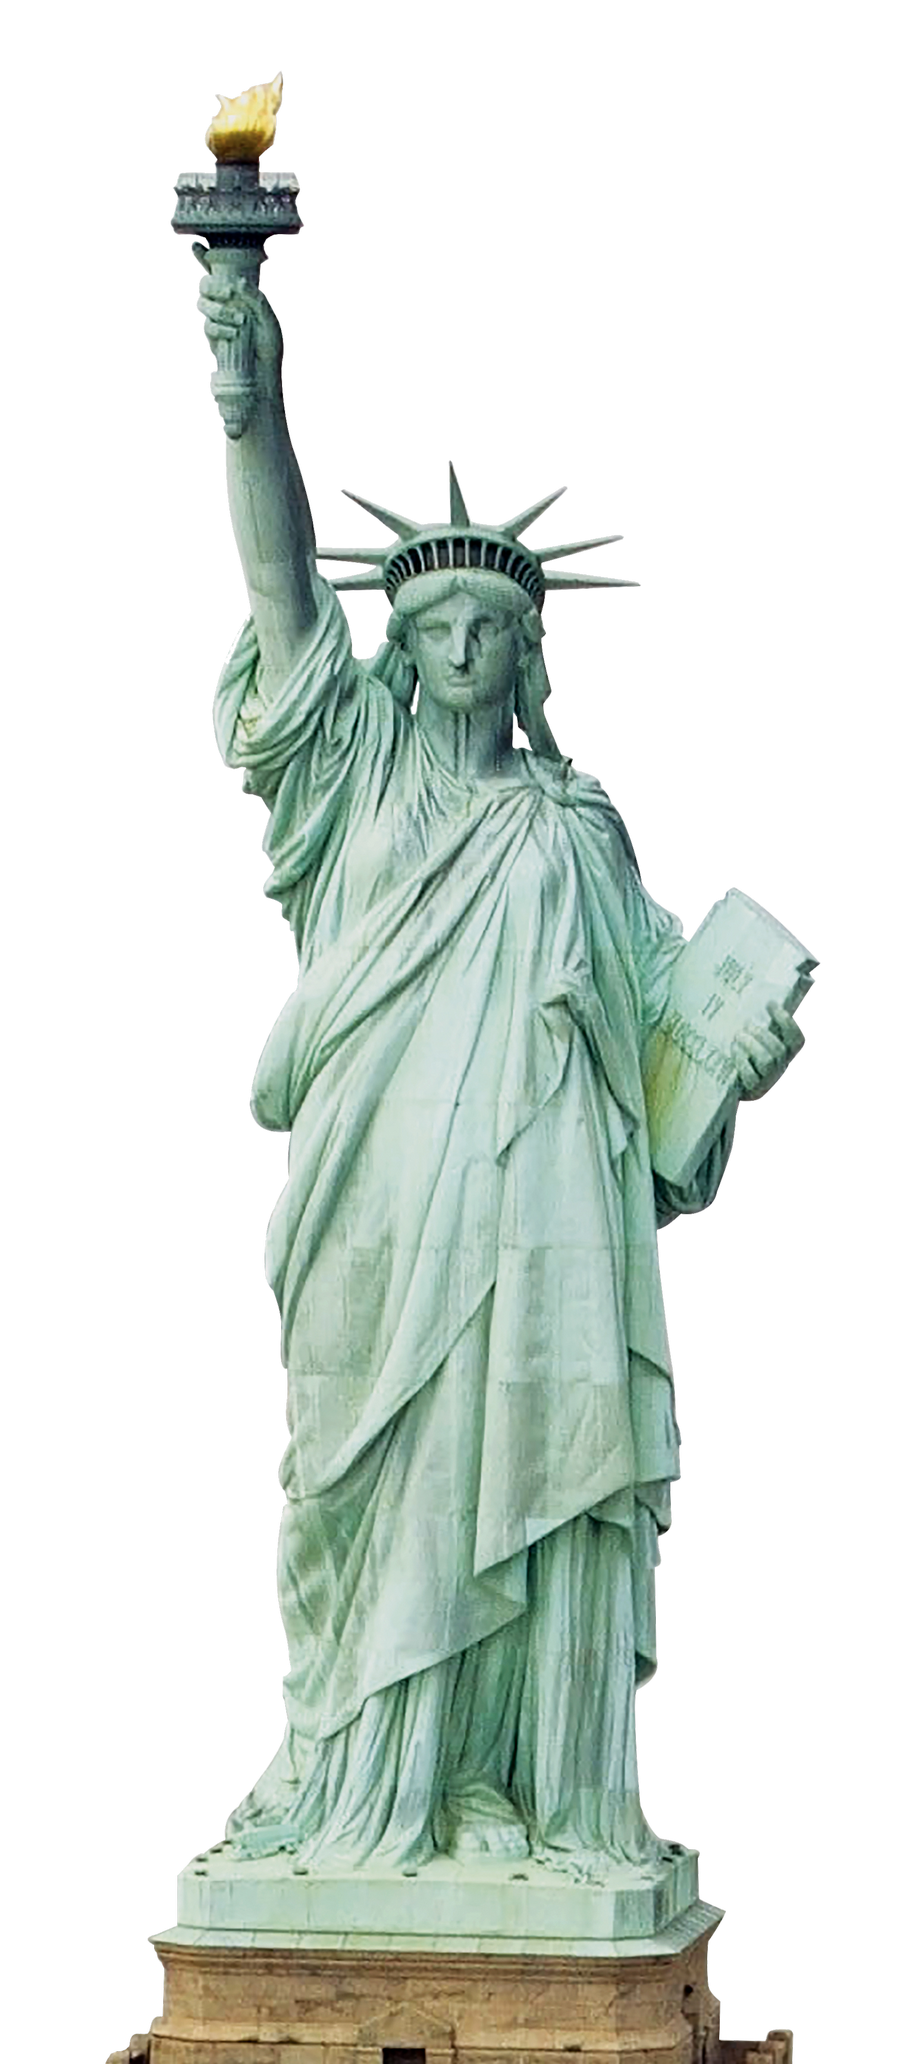 Statue Of Liberty Png Image Statue Of Liberty Drawing Statue Of Liberty Statue